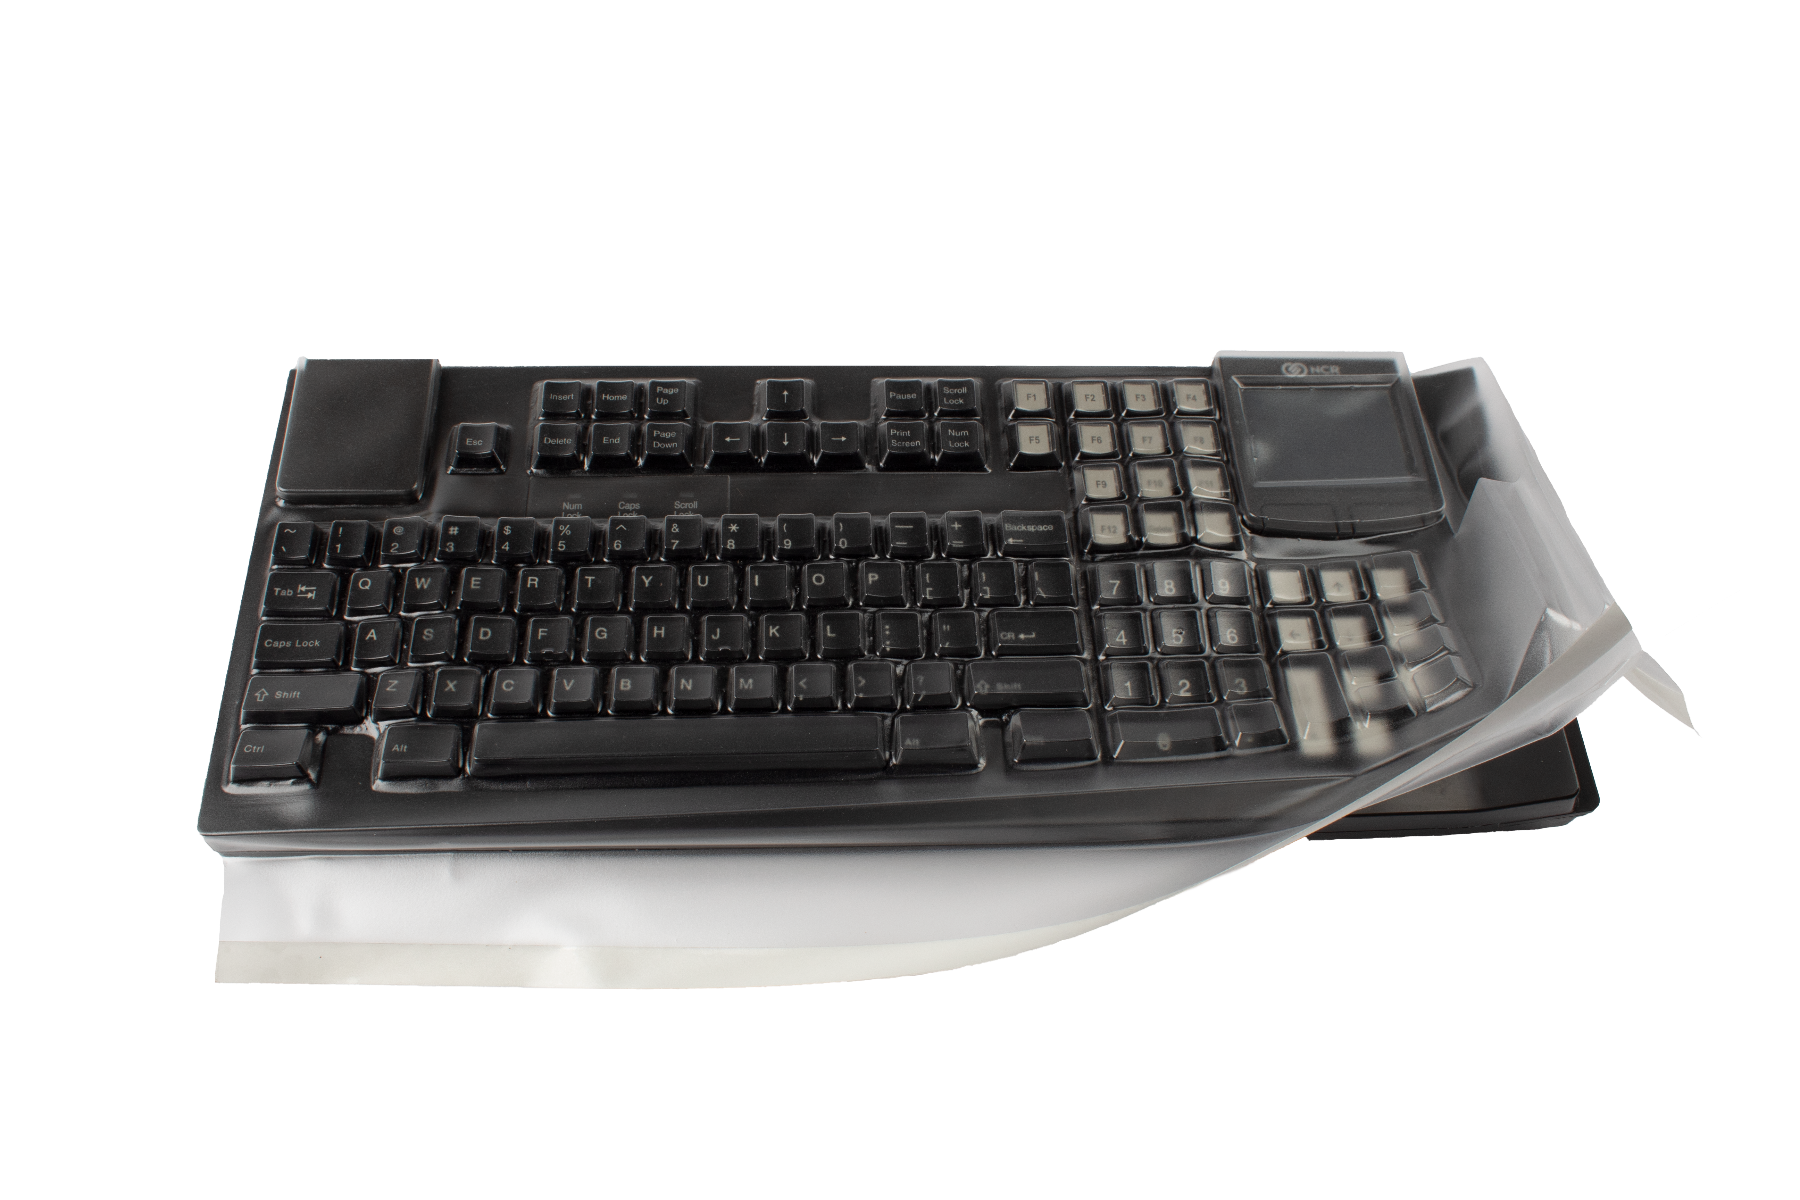 NCR 5932-5515-9090 Keyboard Cover